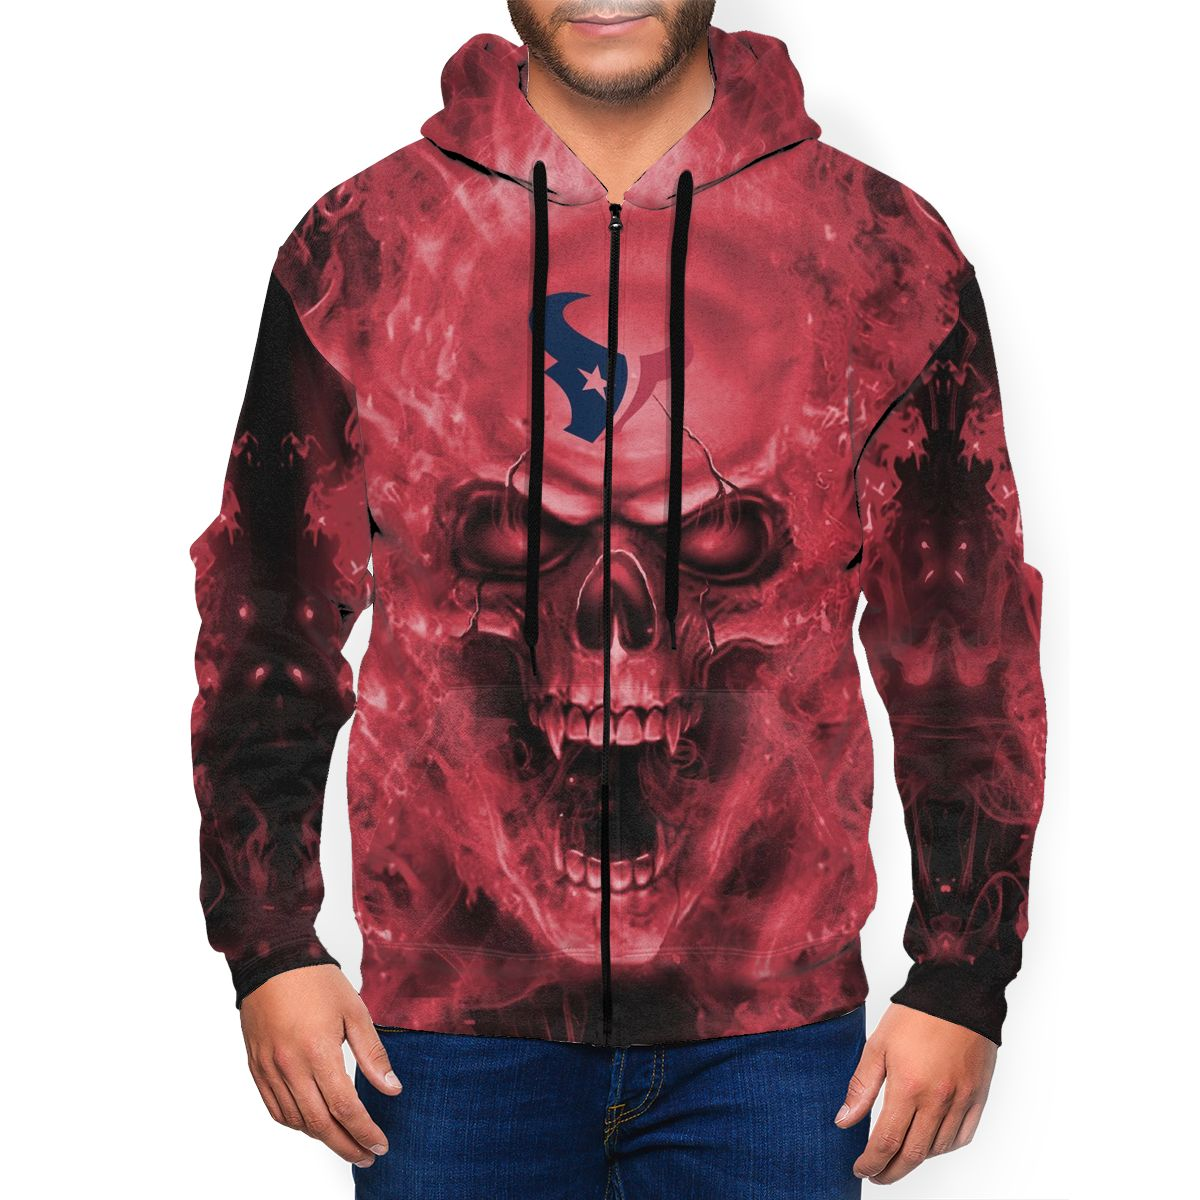 3D Skull Texans Men's Zip Hooded Sweatshirt